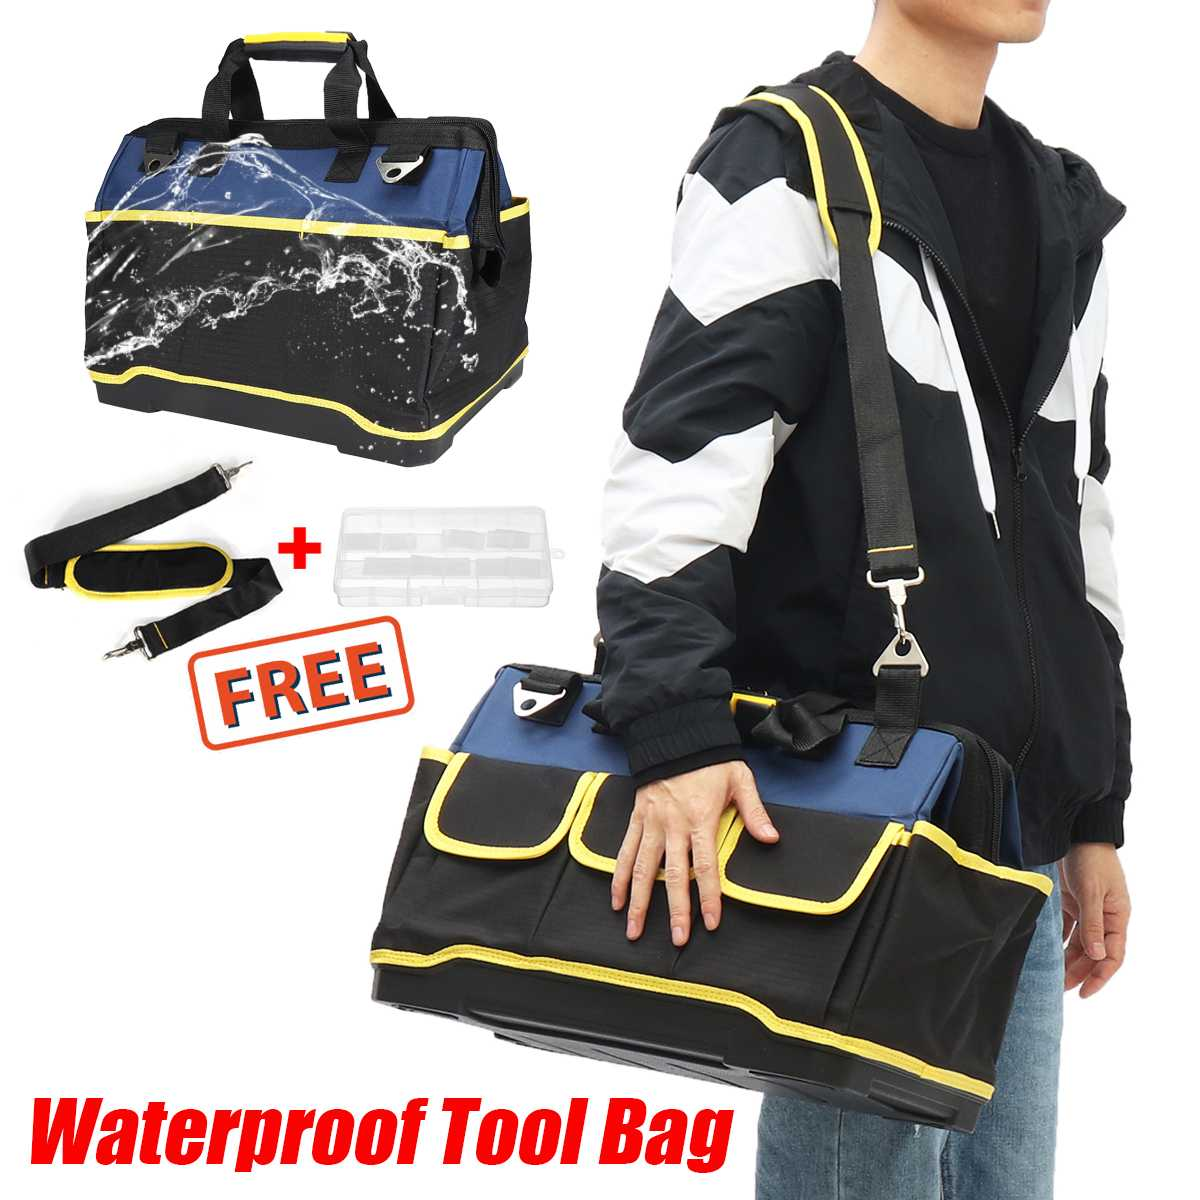 Waterproof Tool Bag Electrician Tools Carpentry Hardware Repair Portable Storage Organizers Box Work Spanner Toolbox Kitbag